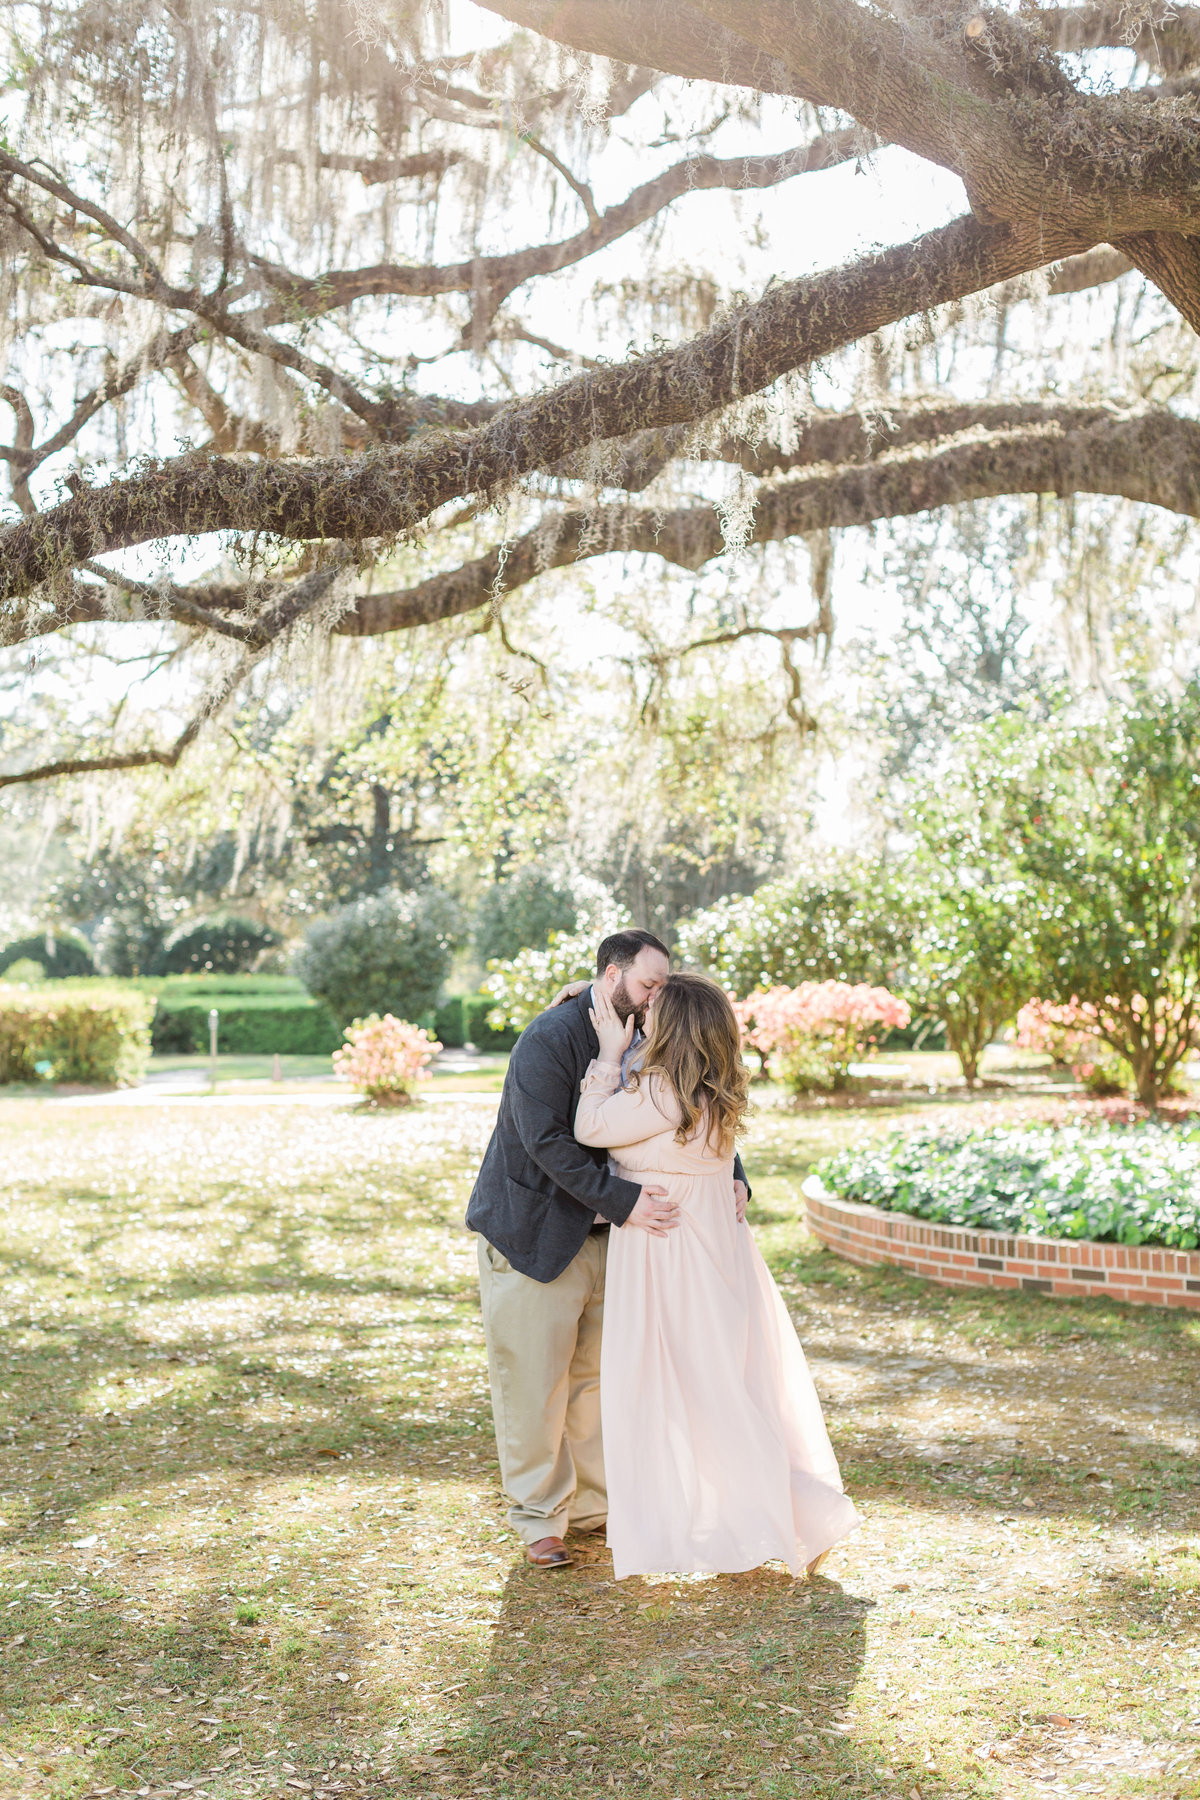 CourtneyWoodhamPhoto-171